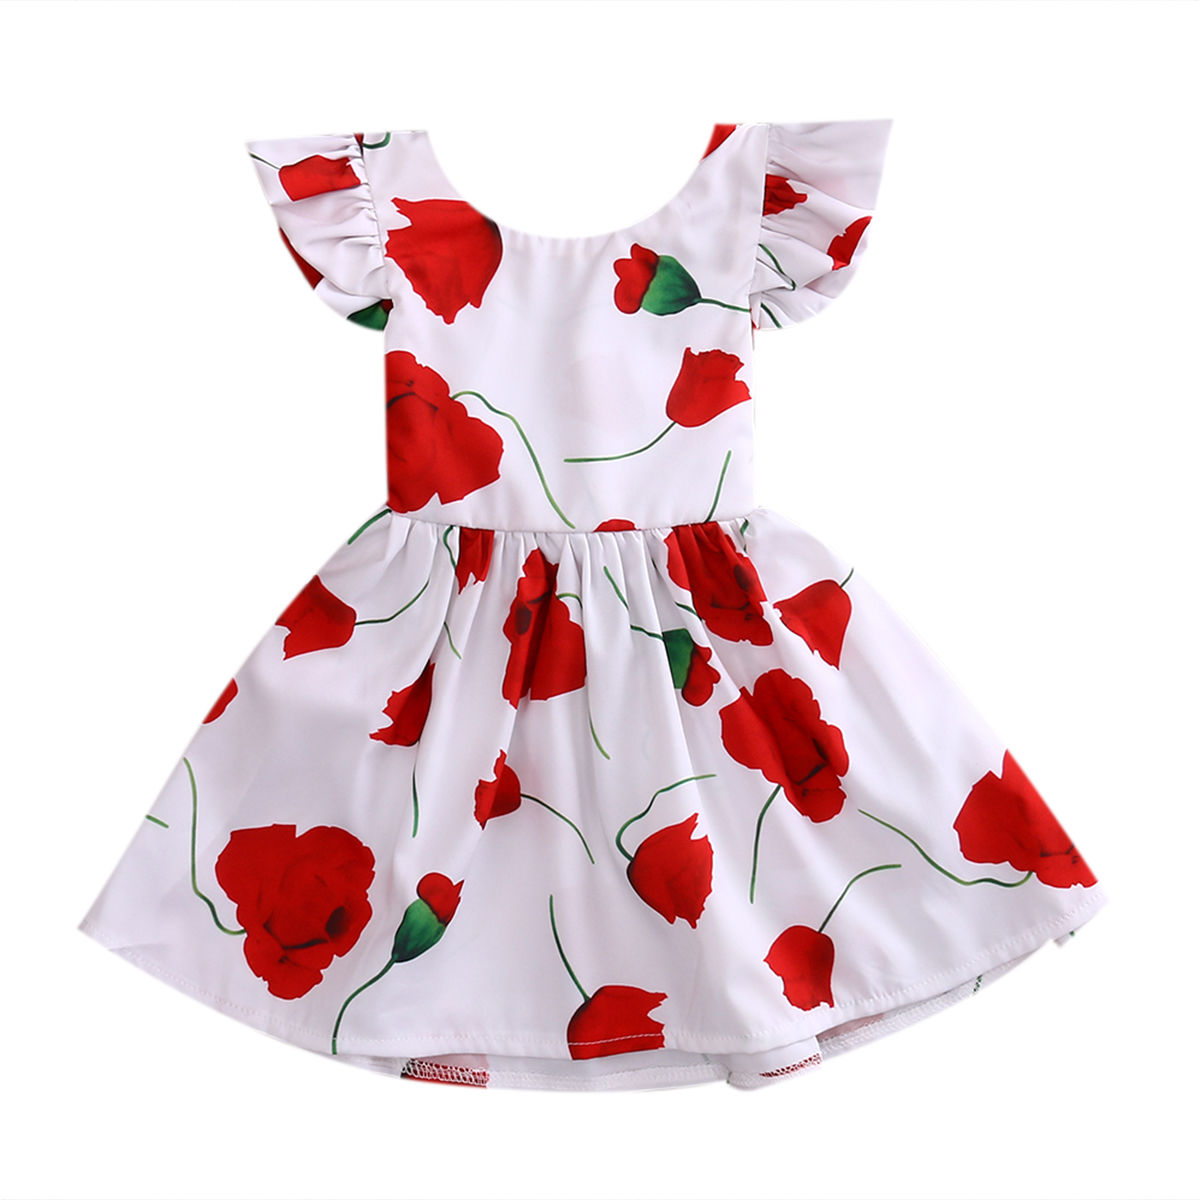 Flower Girls Clothes Princess Dress Kid Baby Party Pageant Floral Red Rose MIni Cute Sleeveless Tutu Dresses Girl kid girl princess dress toddler sleeveless dress tutu lace flower bow dresses pageant dress clothes